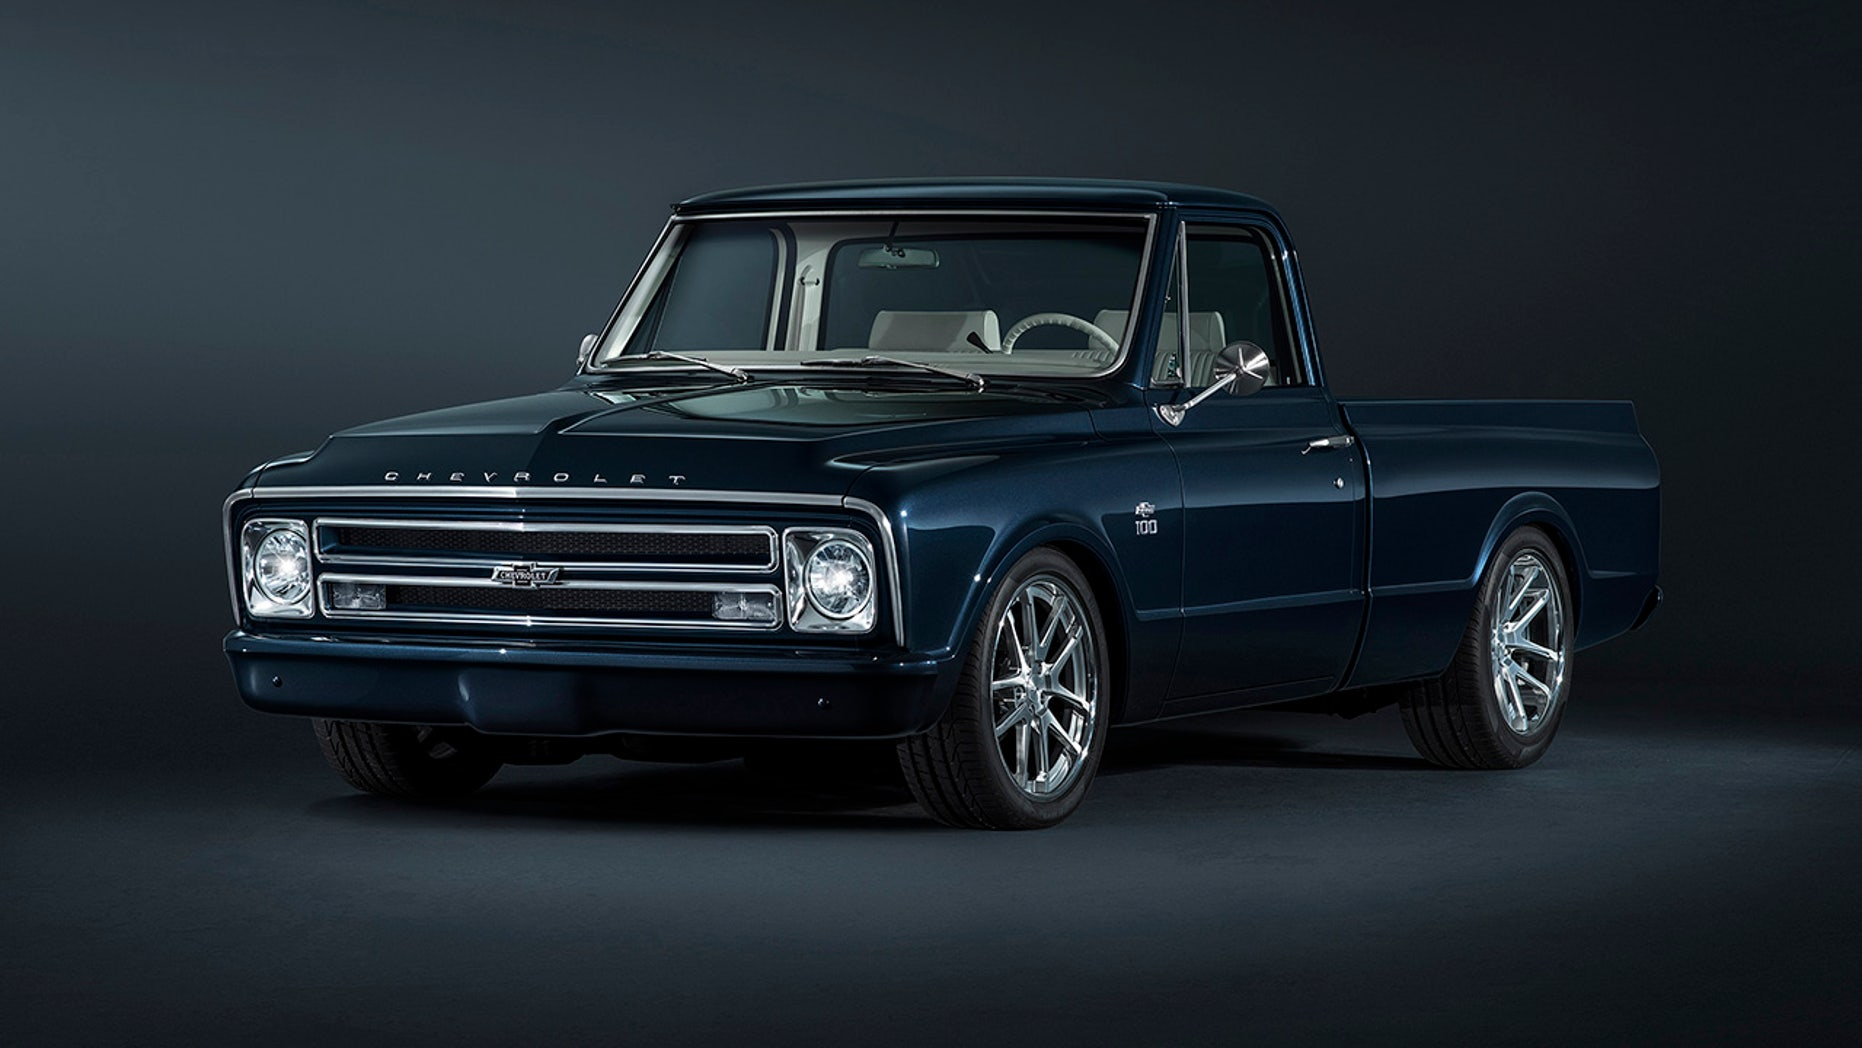 Chevy's custom 1967 C/10 pickup is a modernized classic ...